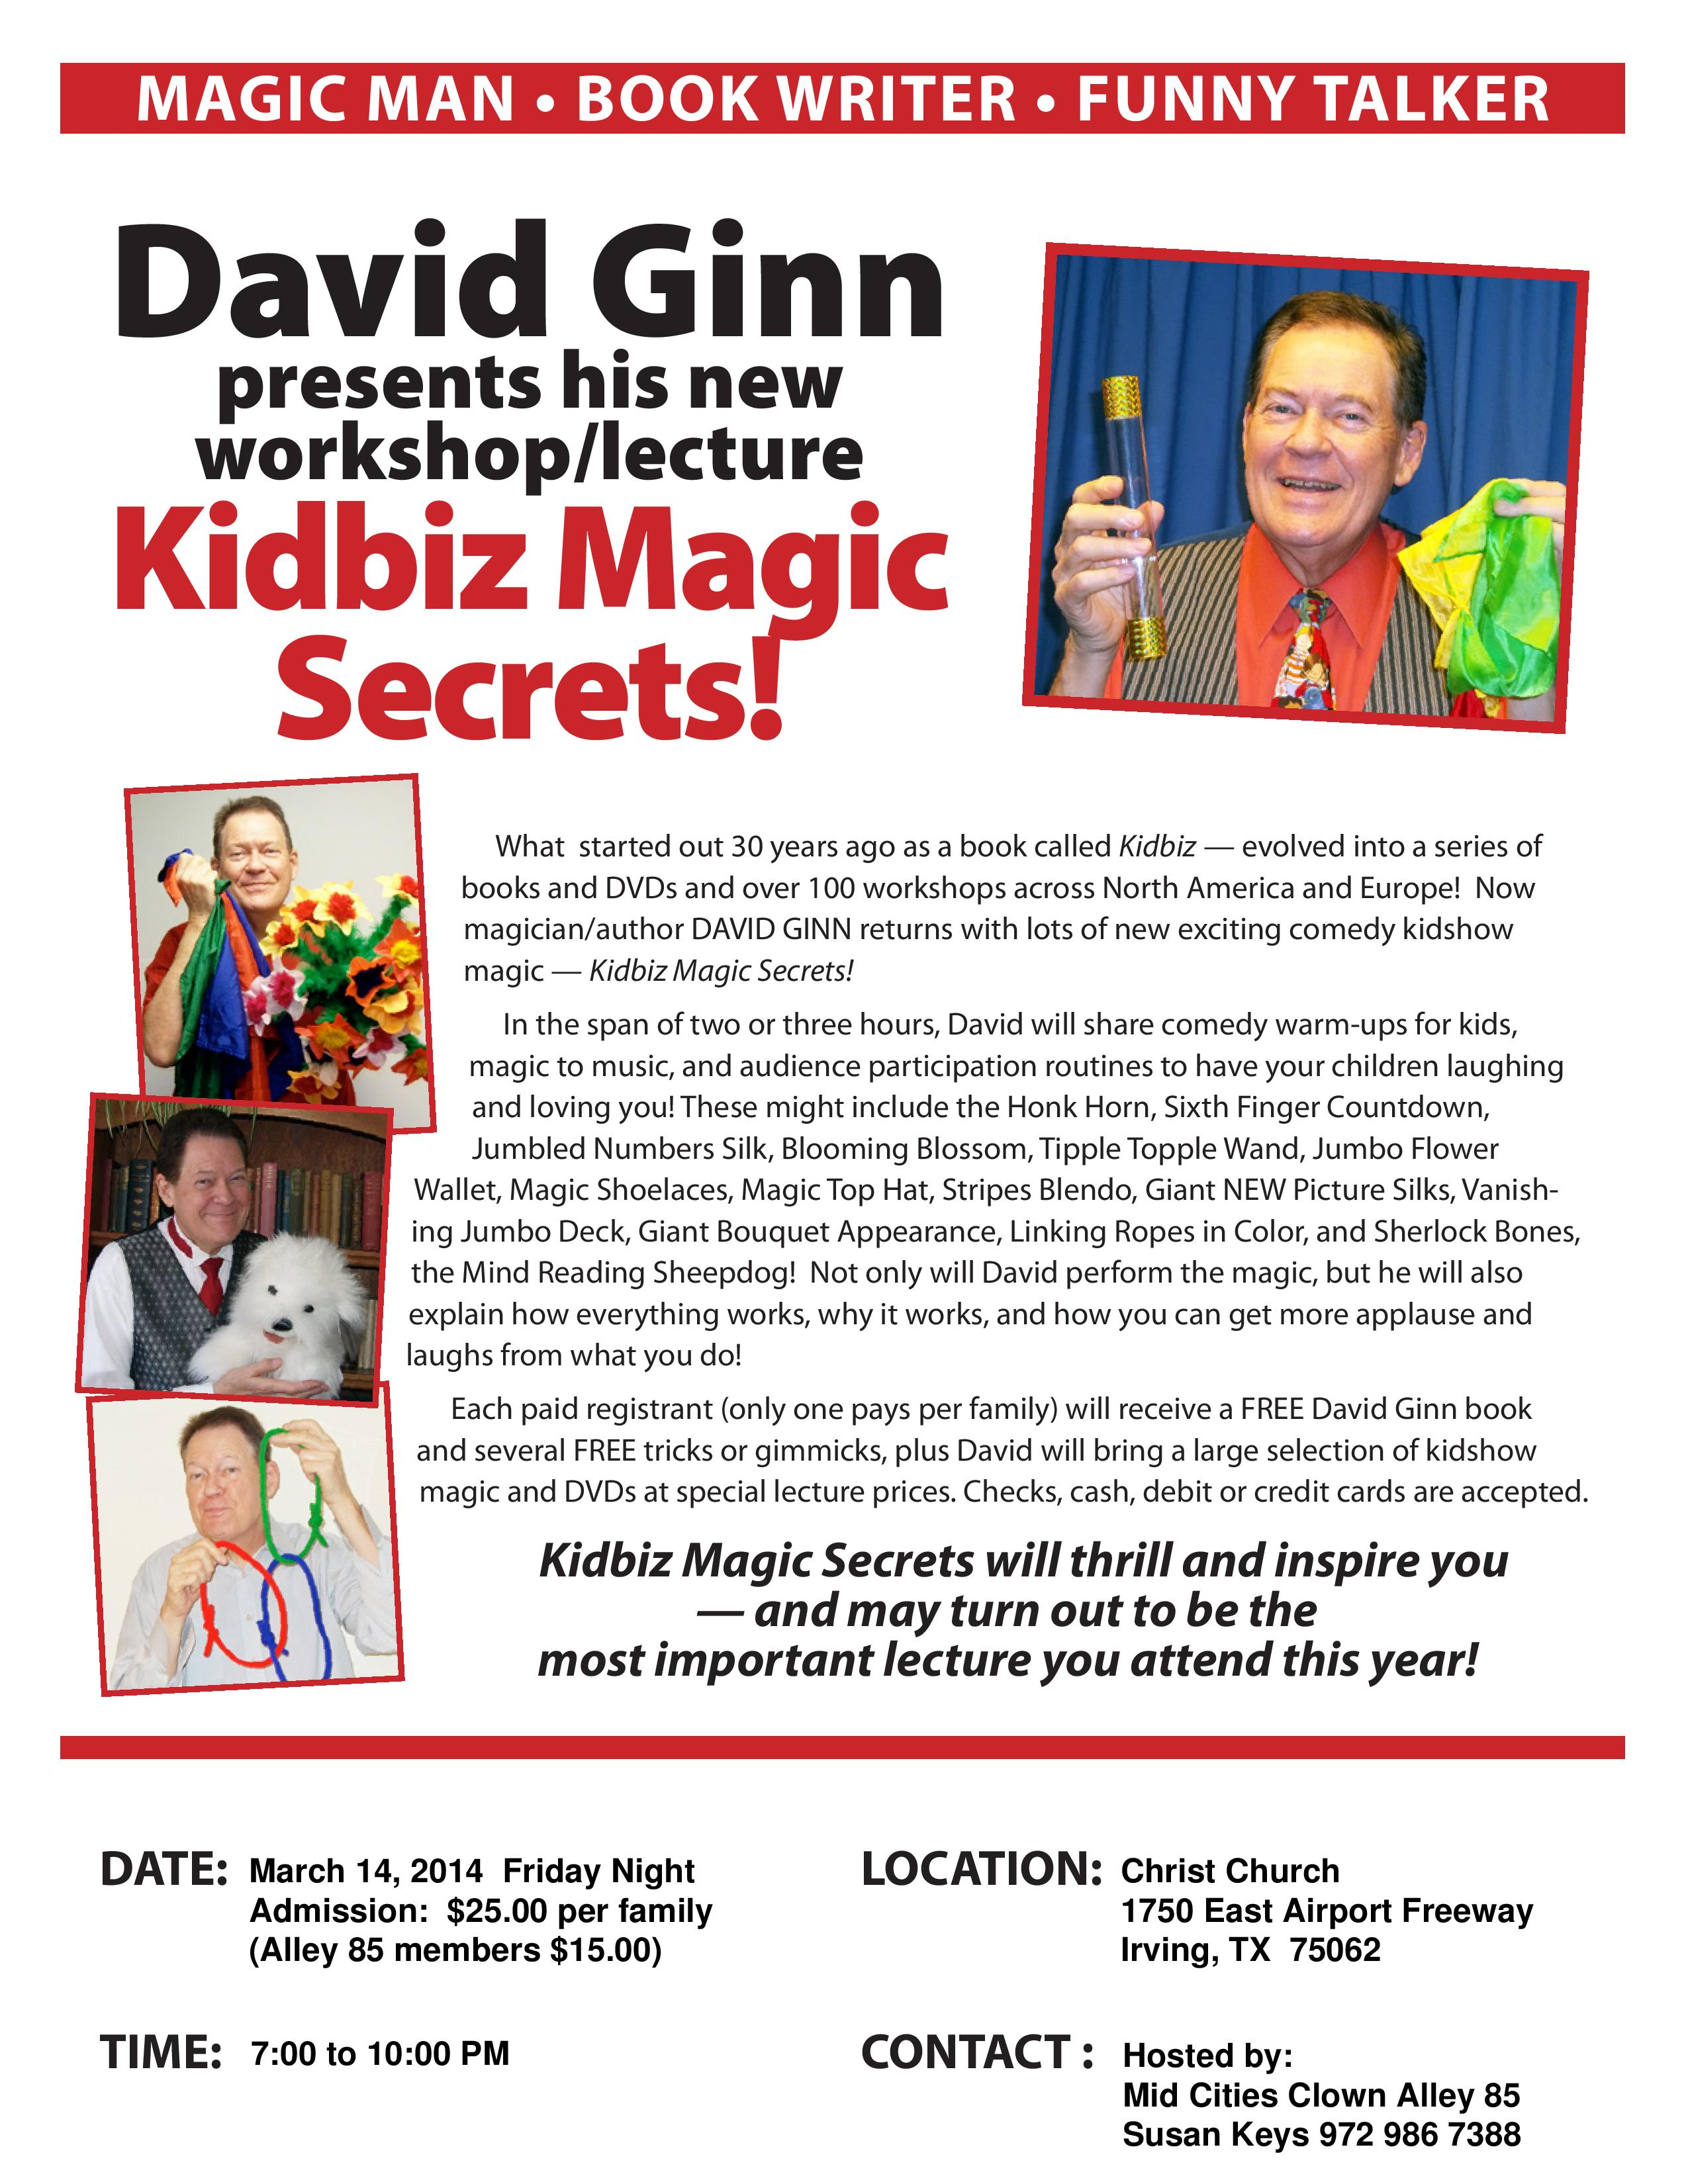 David Ginn Kidbiz Magic Secrets